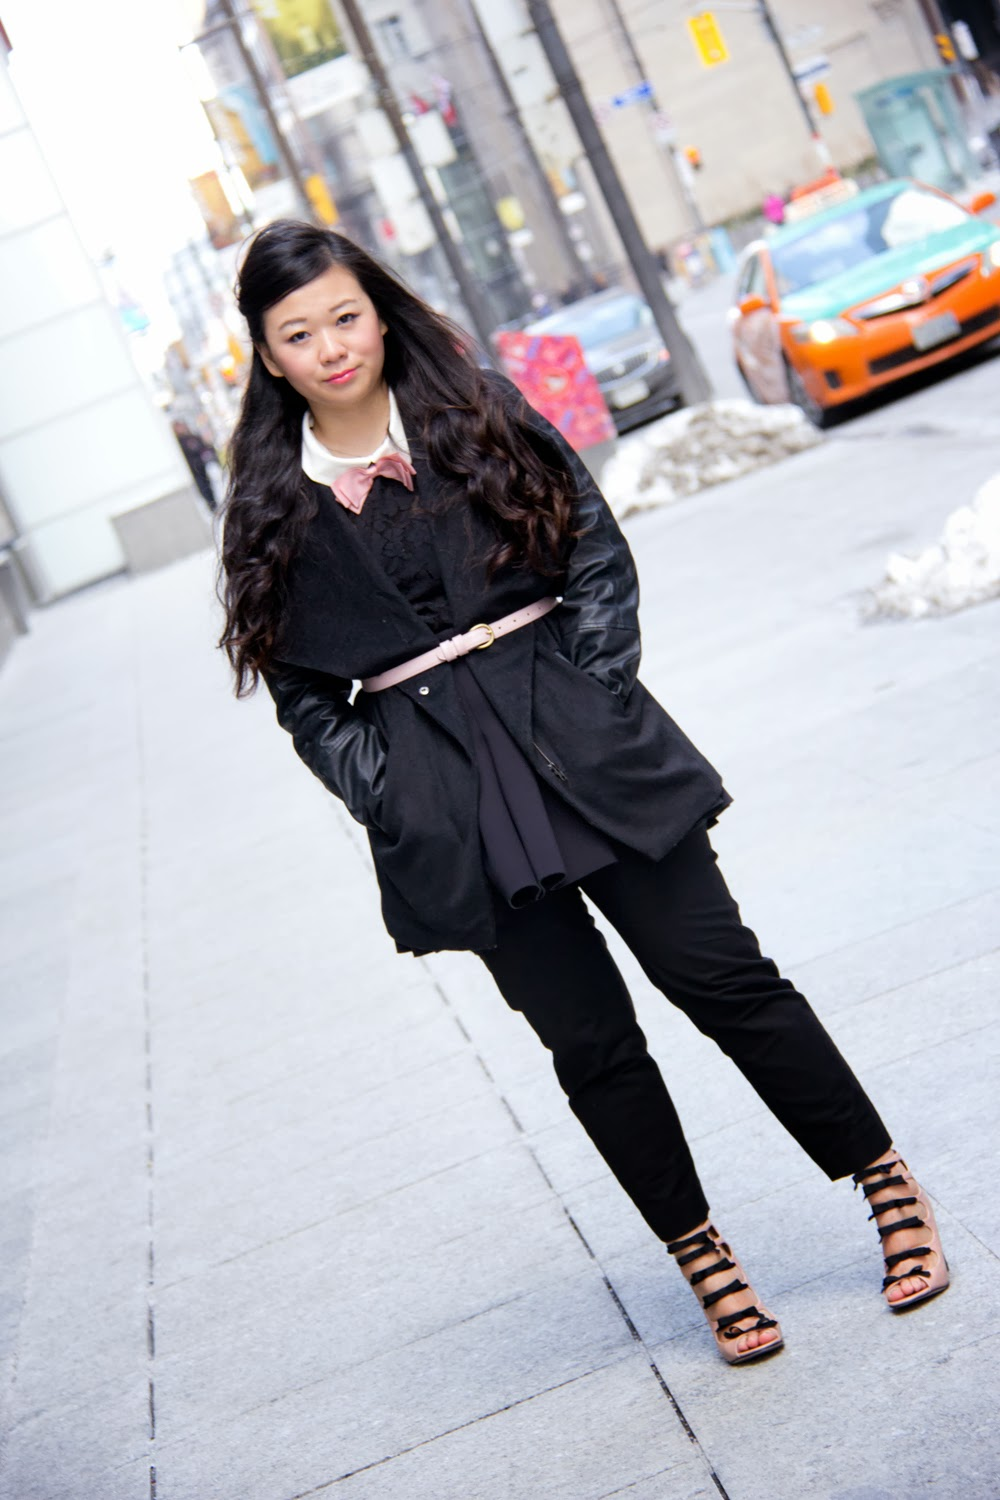 Black-Faux-Leather-Sleeve-Coat, American-Apparel-Pink-Belt, Bow-Tie, TopShop-Pumps